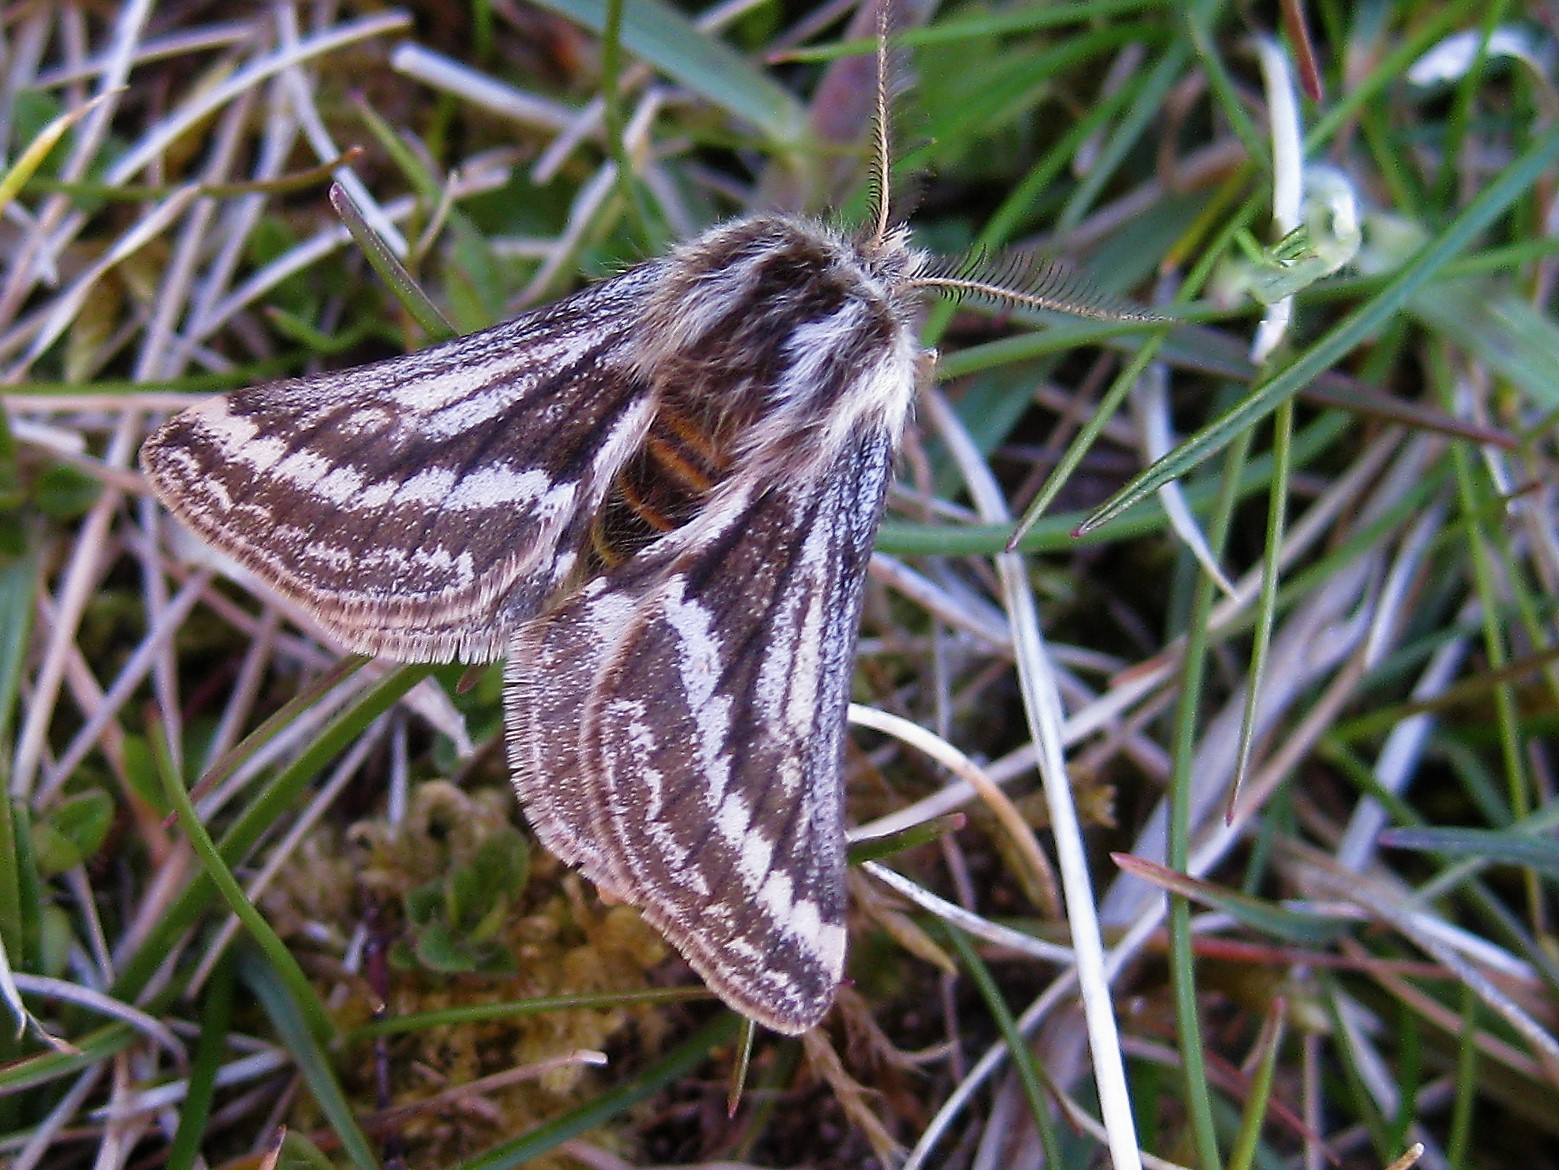 The Belted Beauty Moth